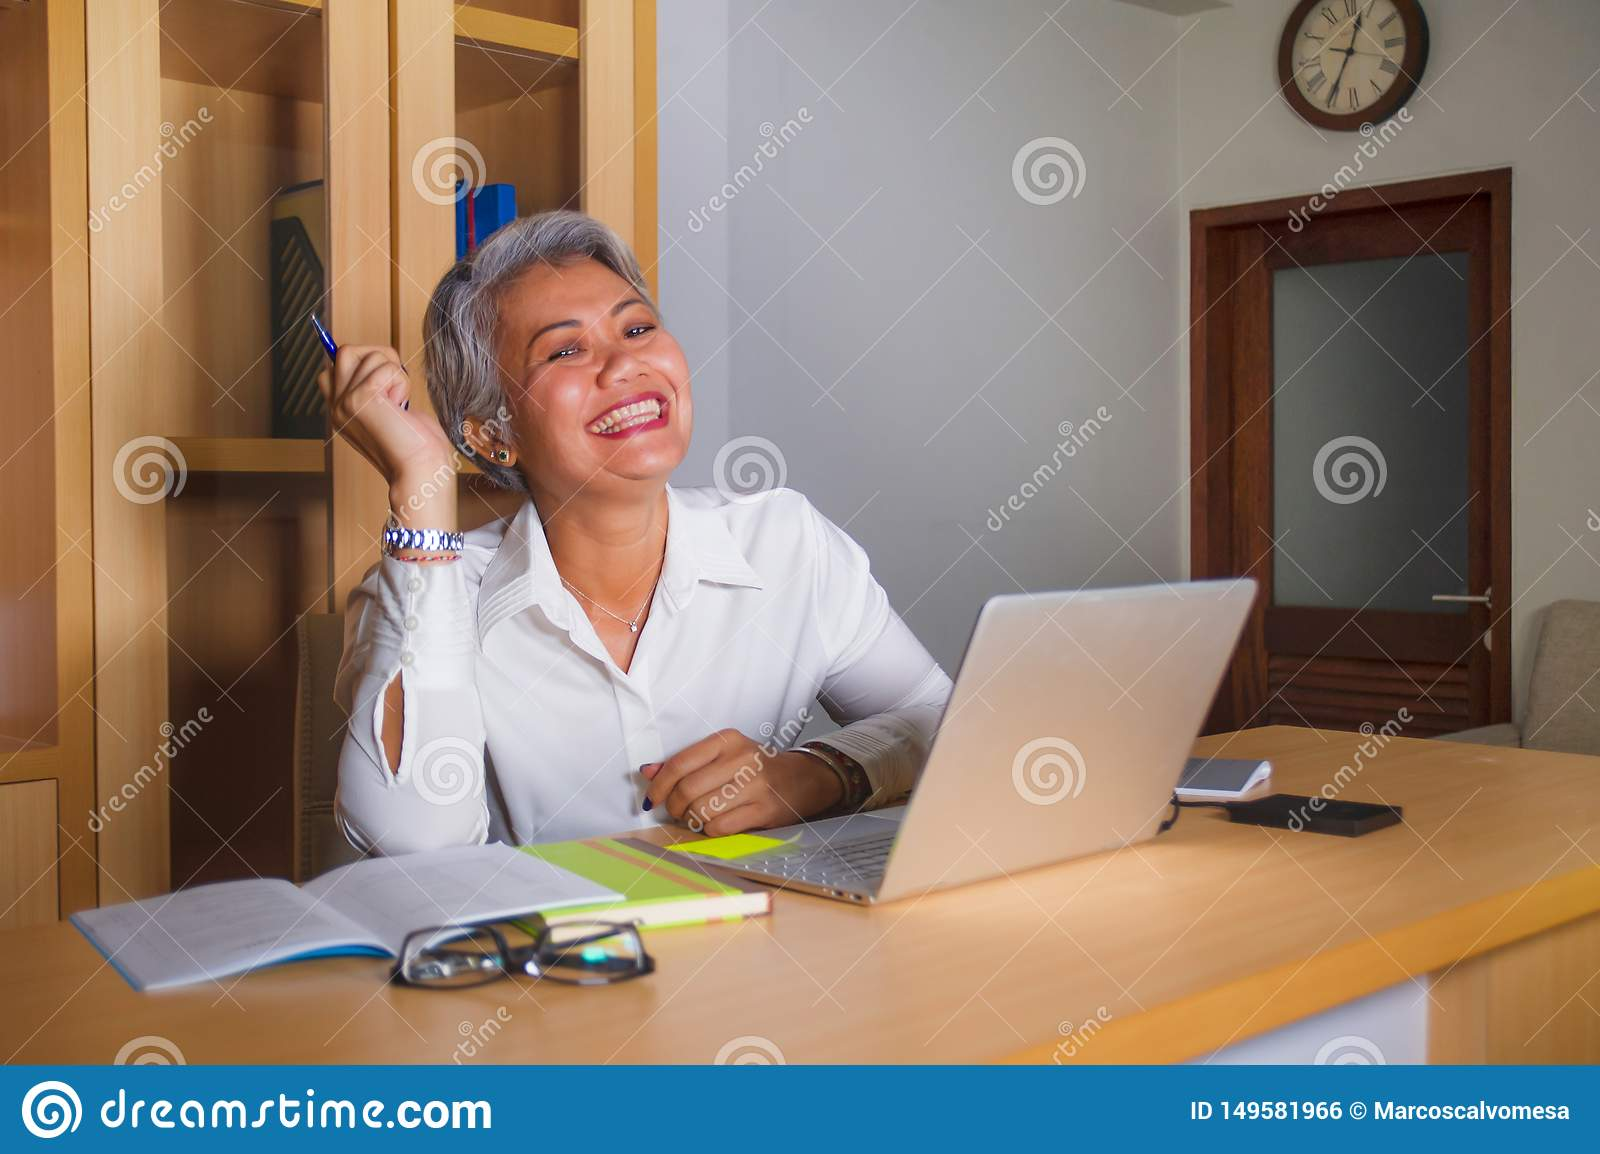 Corporate job lifestyle portrait of happy and successful attractive middle aged Asian woman working at office laptop computer desk